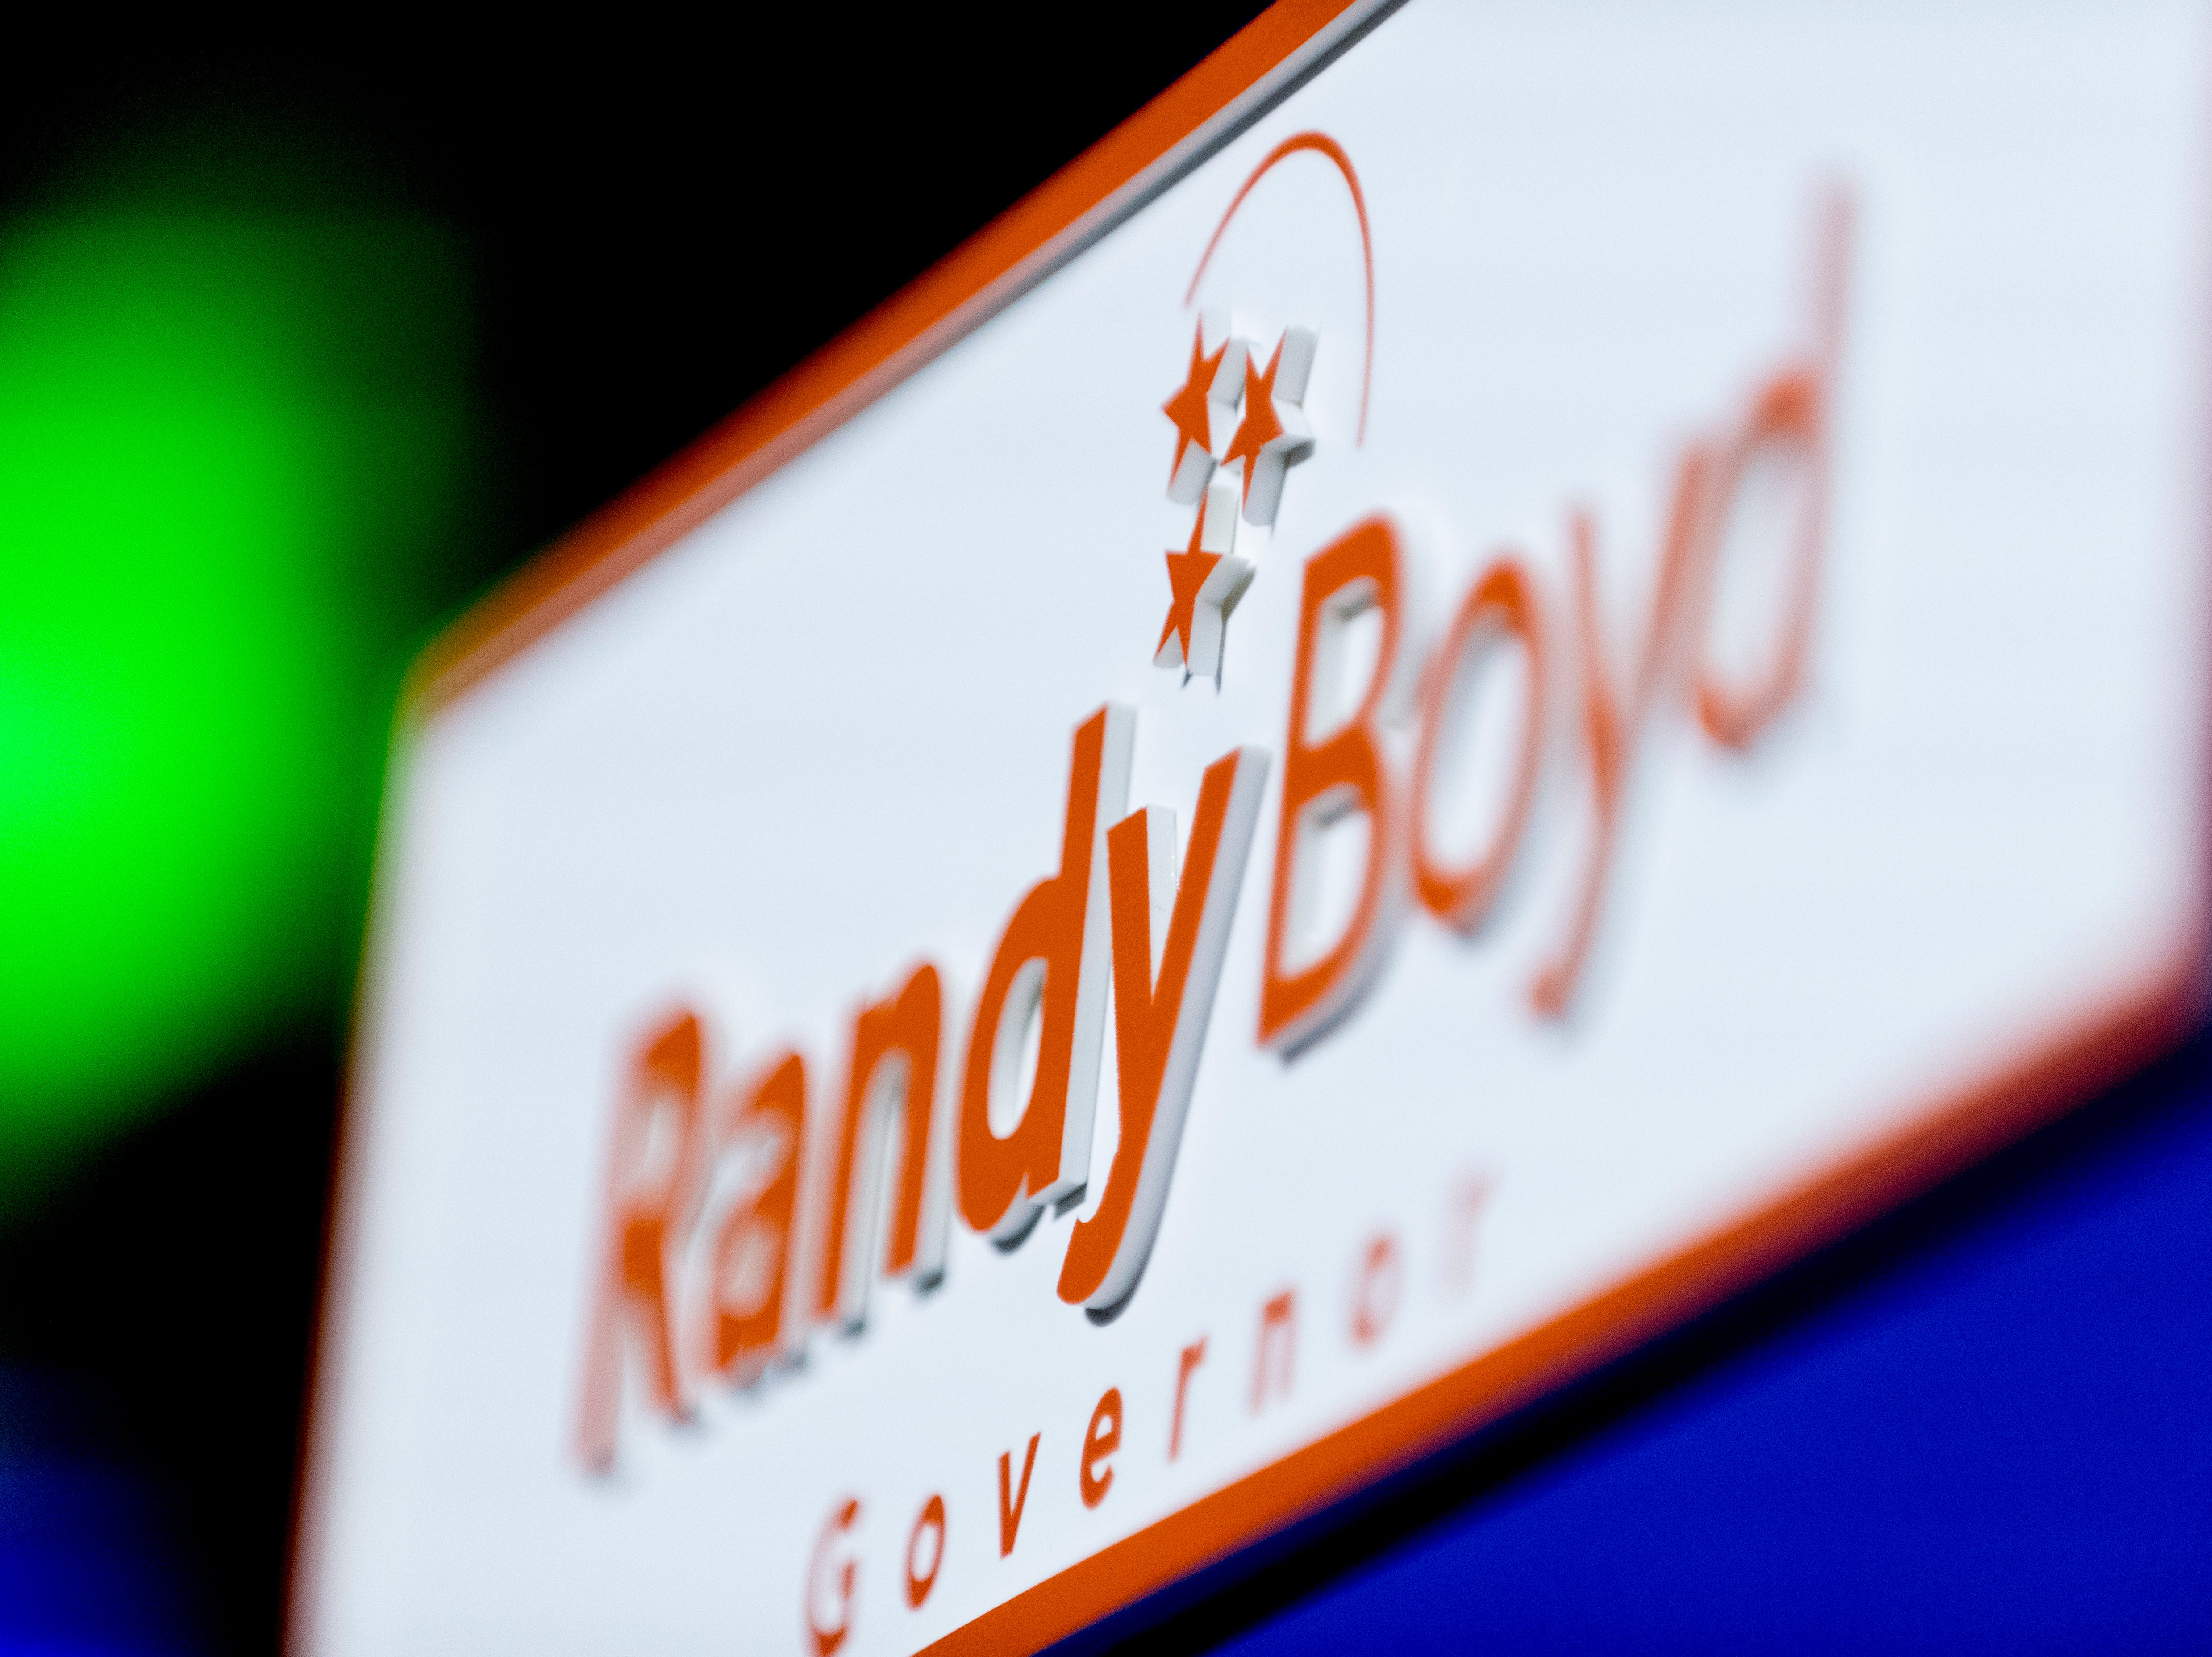 The Randy Boyd for Governor logo is seen at the Randy Boyd for Governor watch party at Jackson Terminal in Knoxville, Tennessee on Thursday, August 2, 2018.